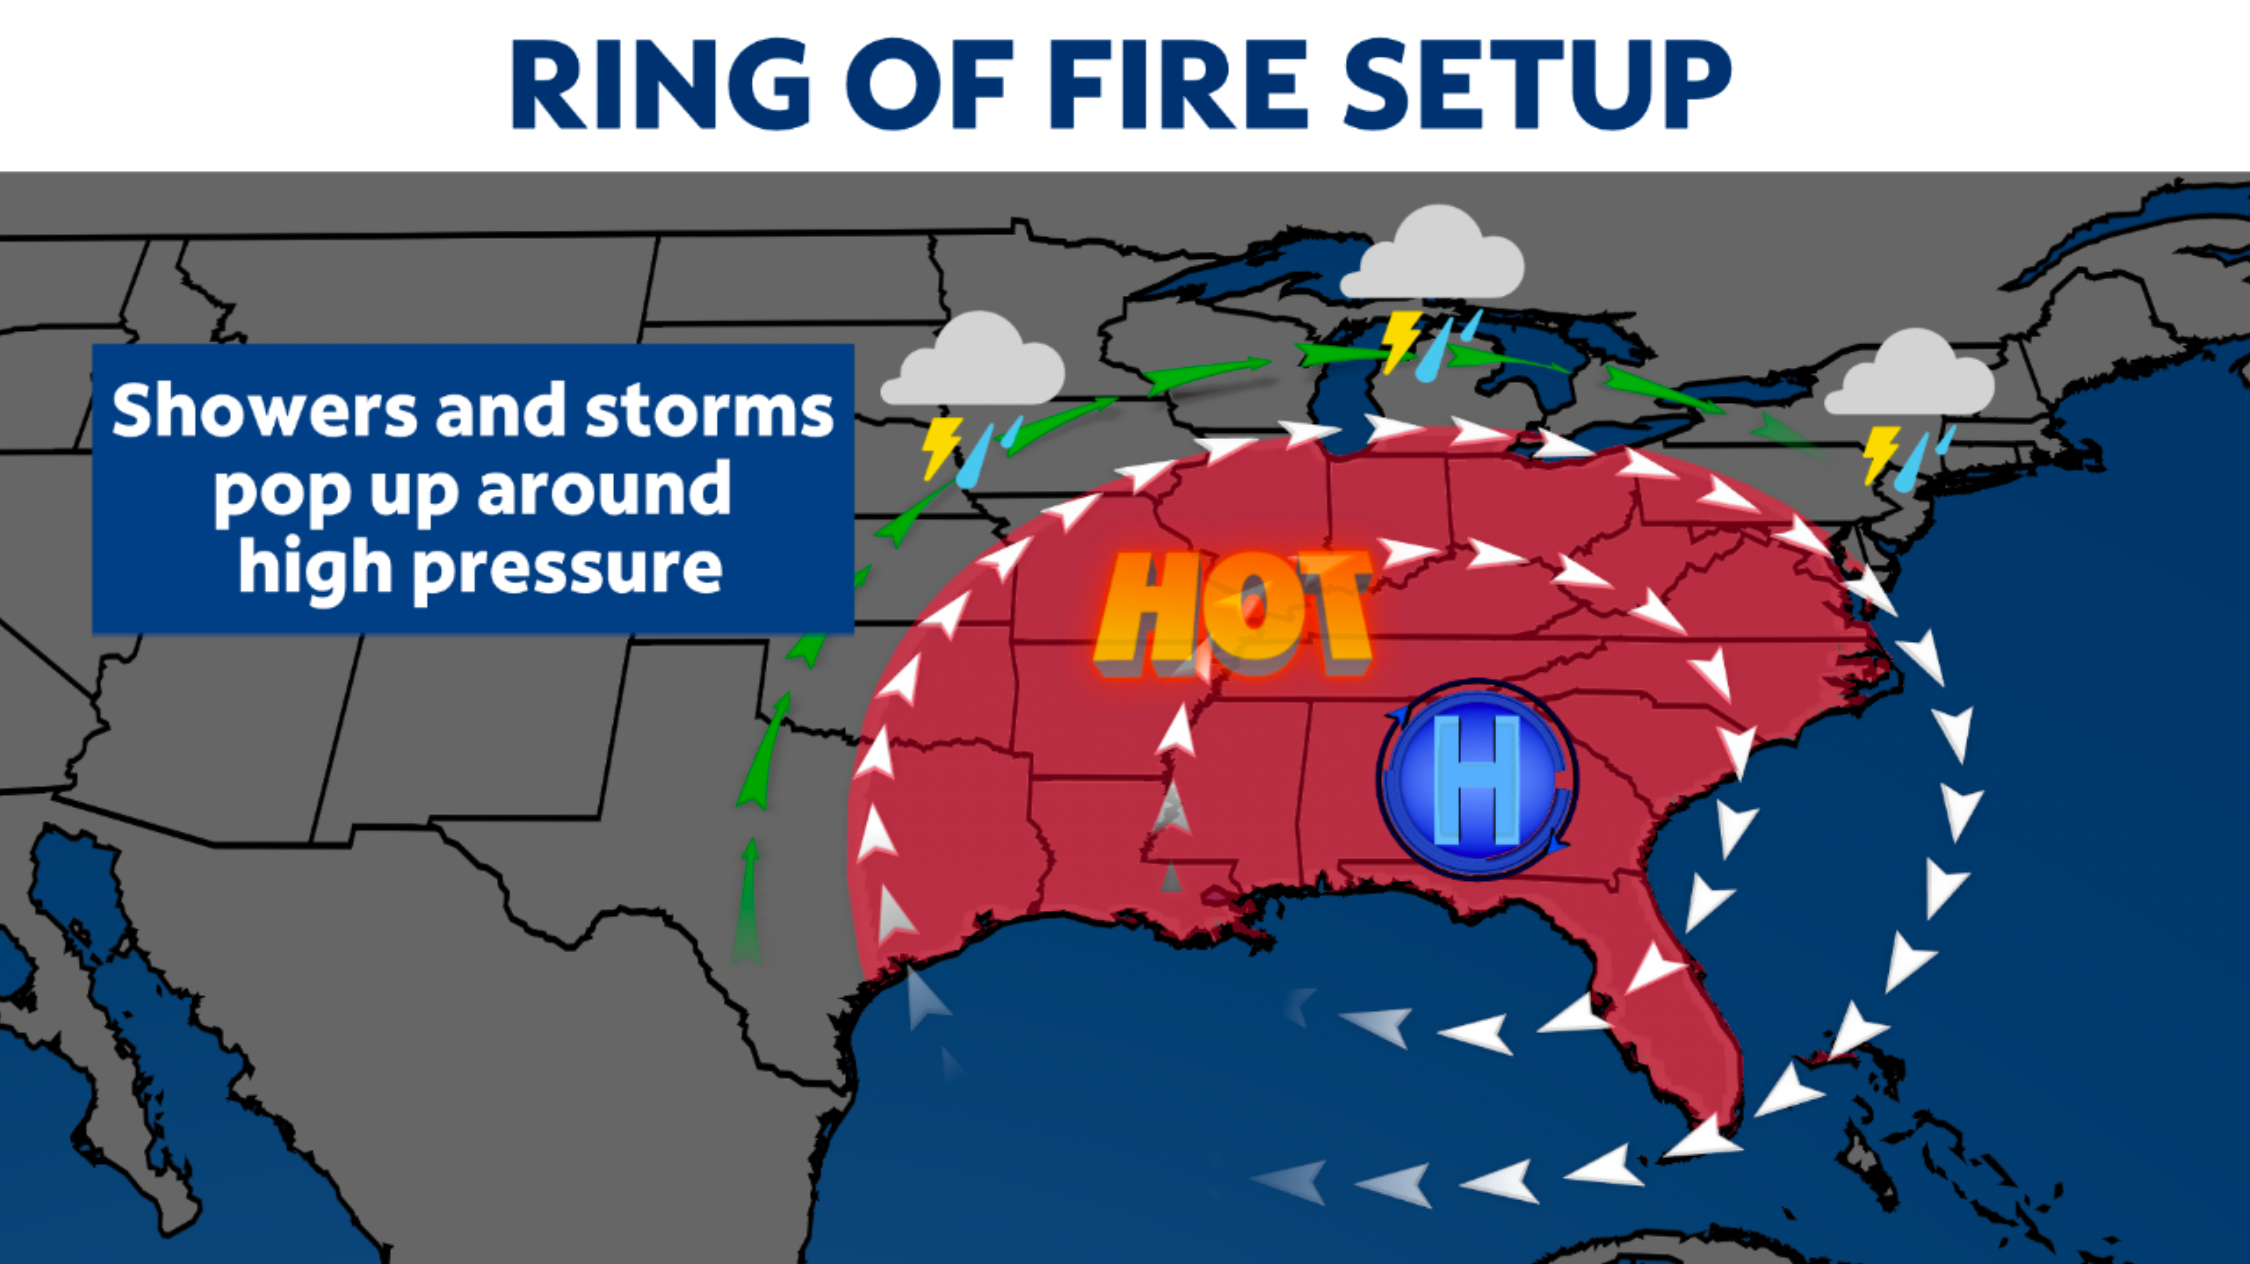 Ring of fire weather pattern